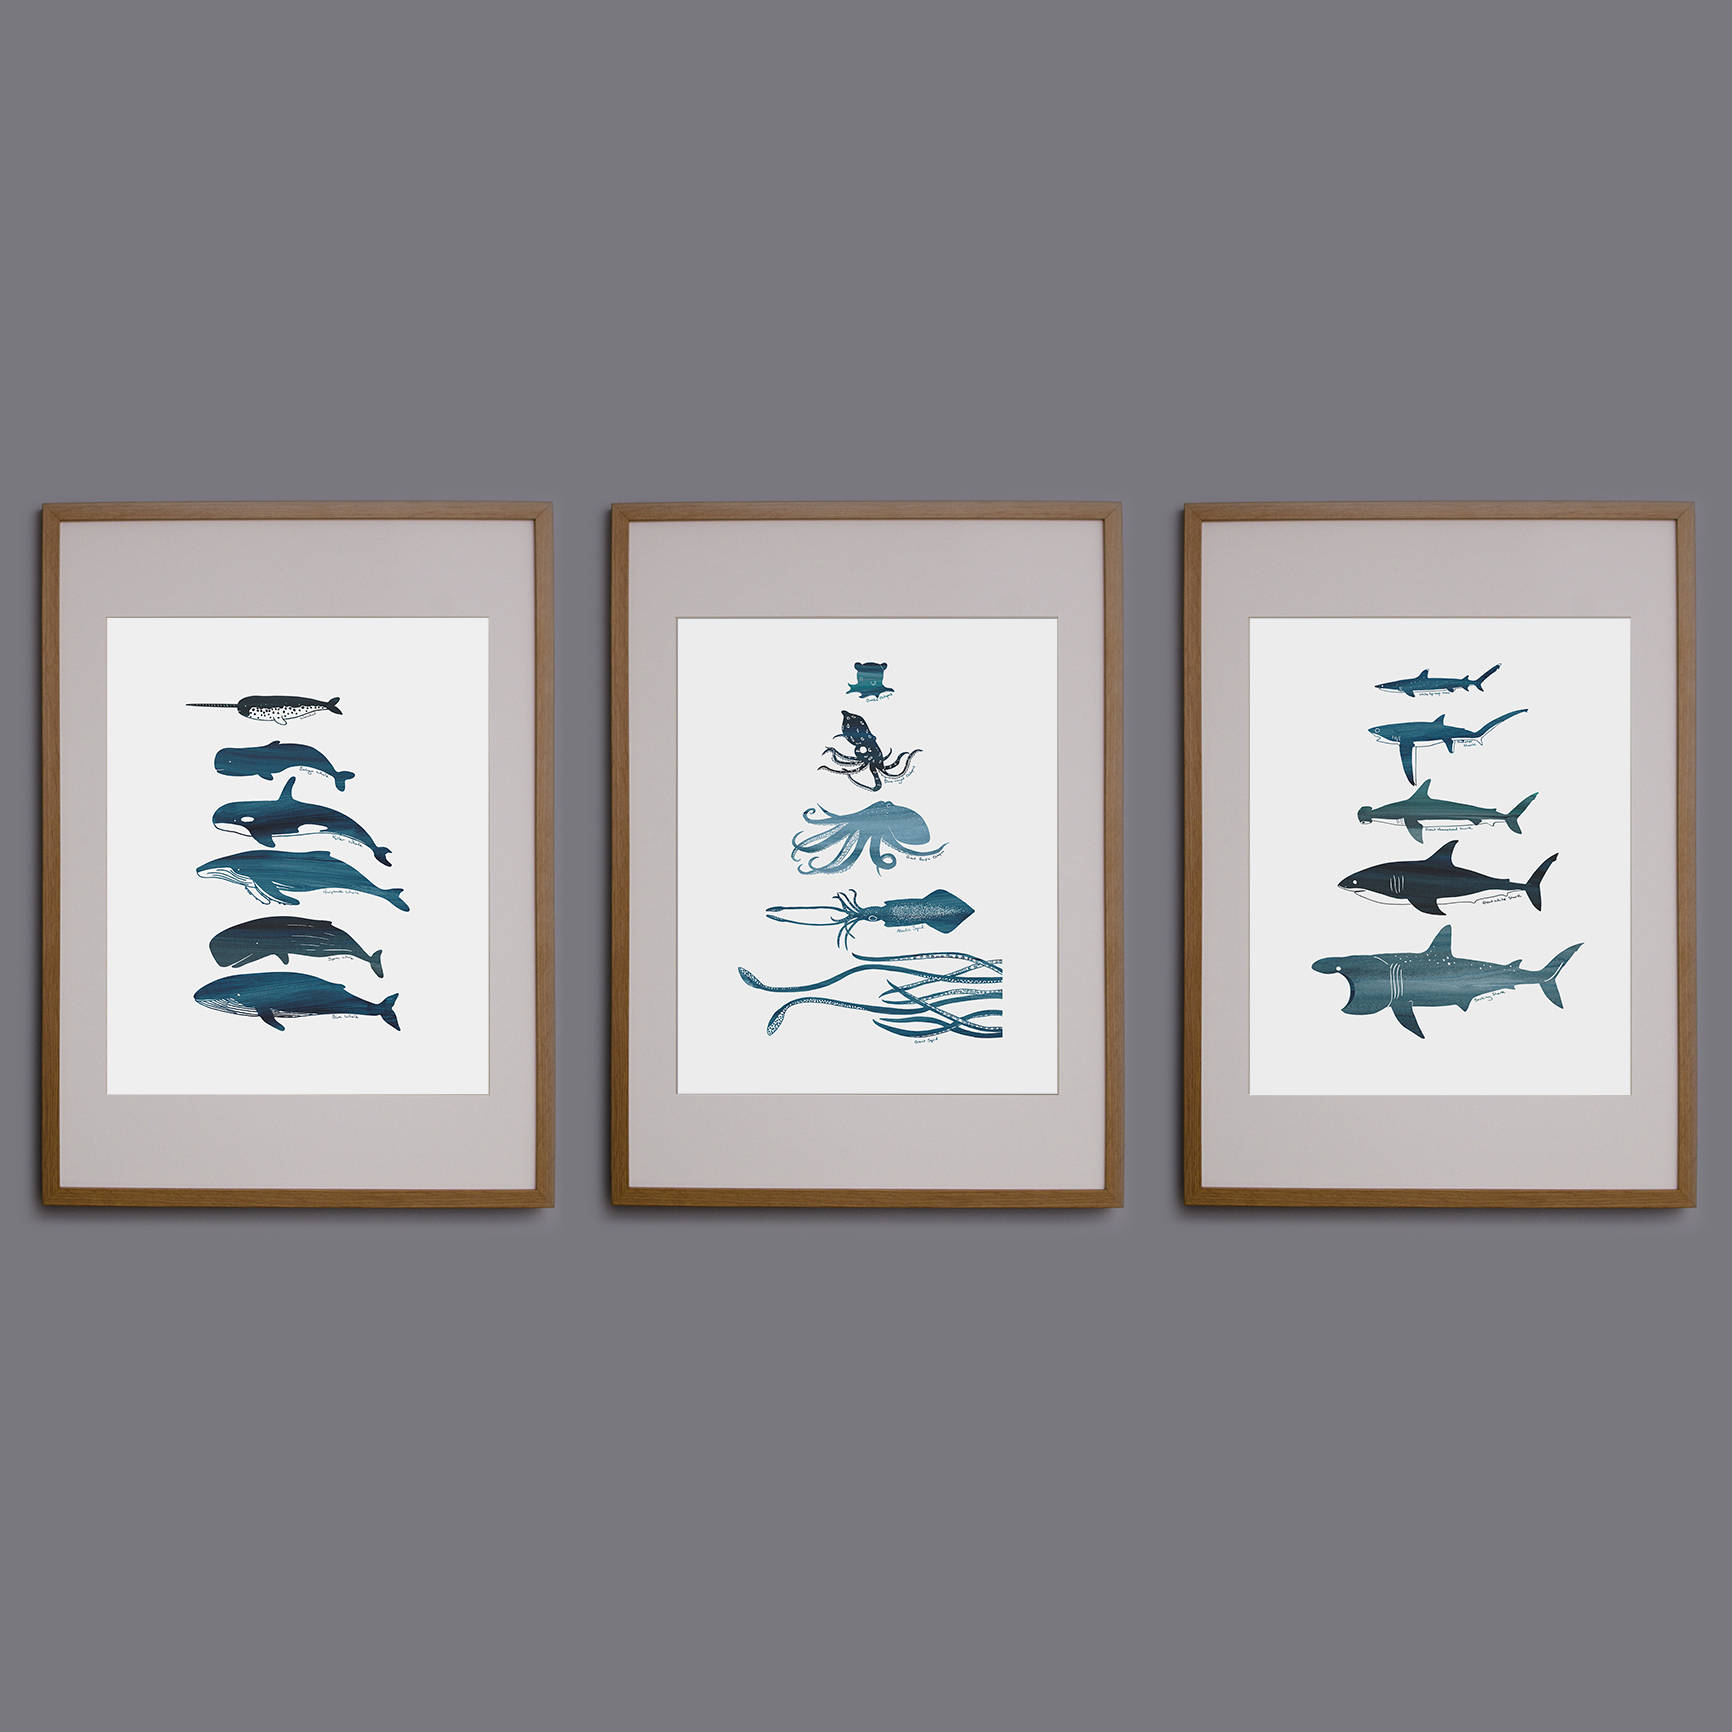 Ocean creatures prints. Whales, sharks or octopus/squid